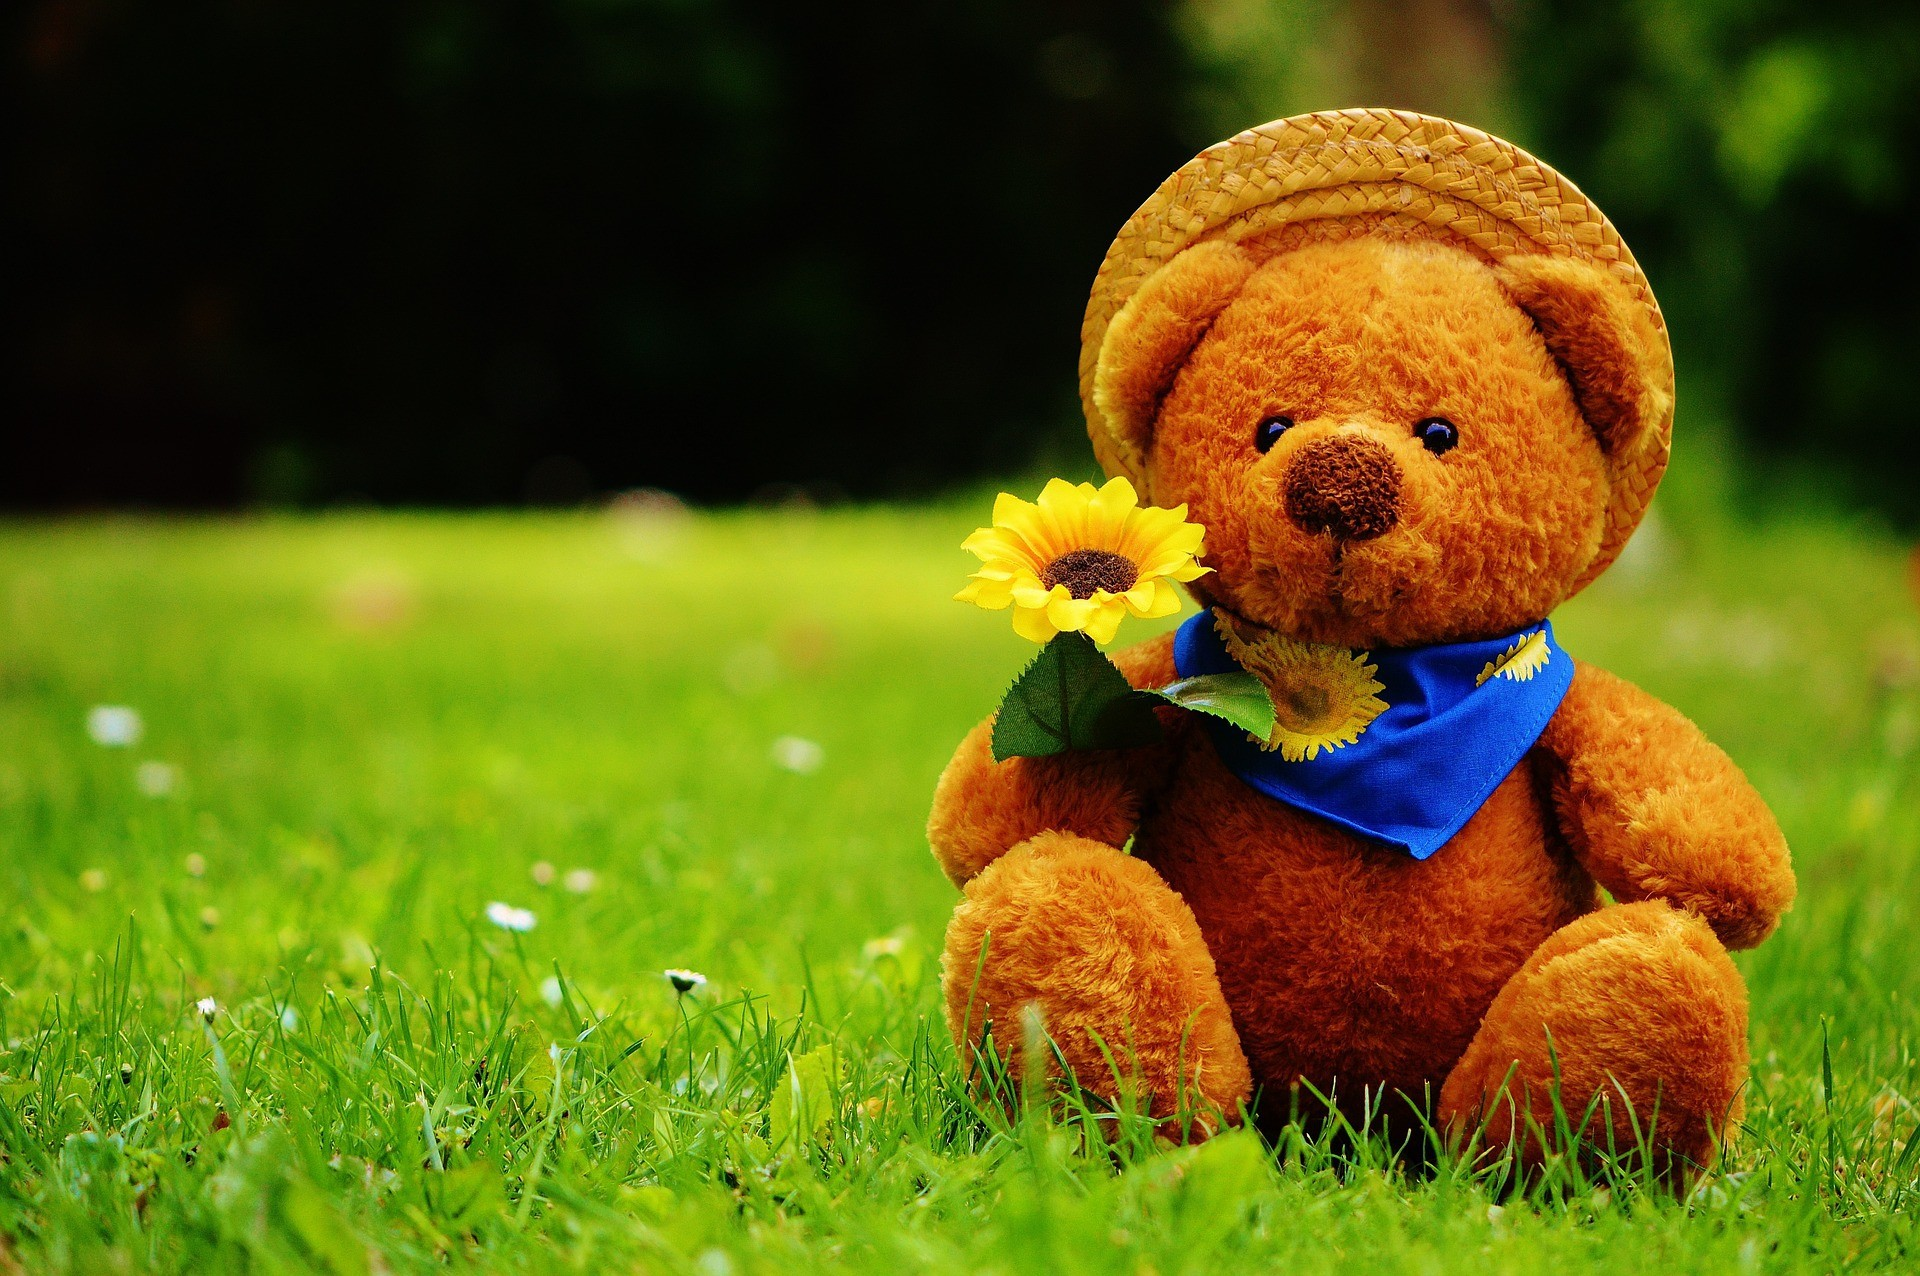 Hd sweet teddy bear wallpapers